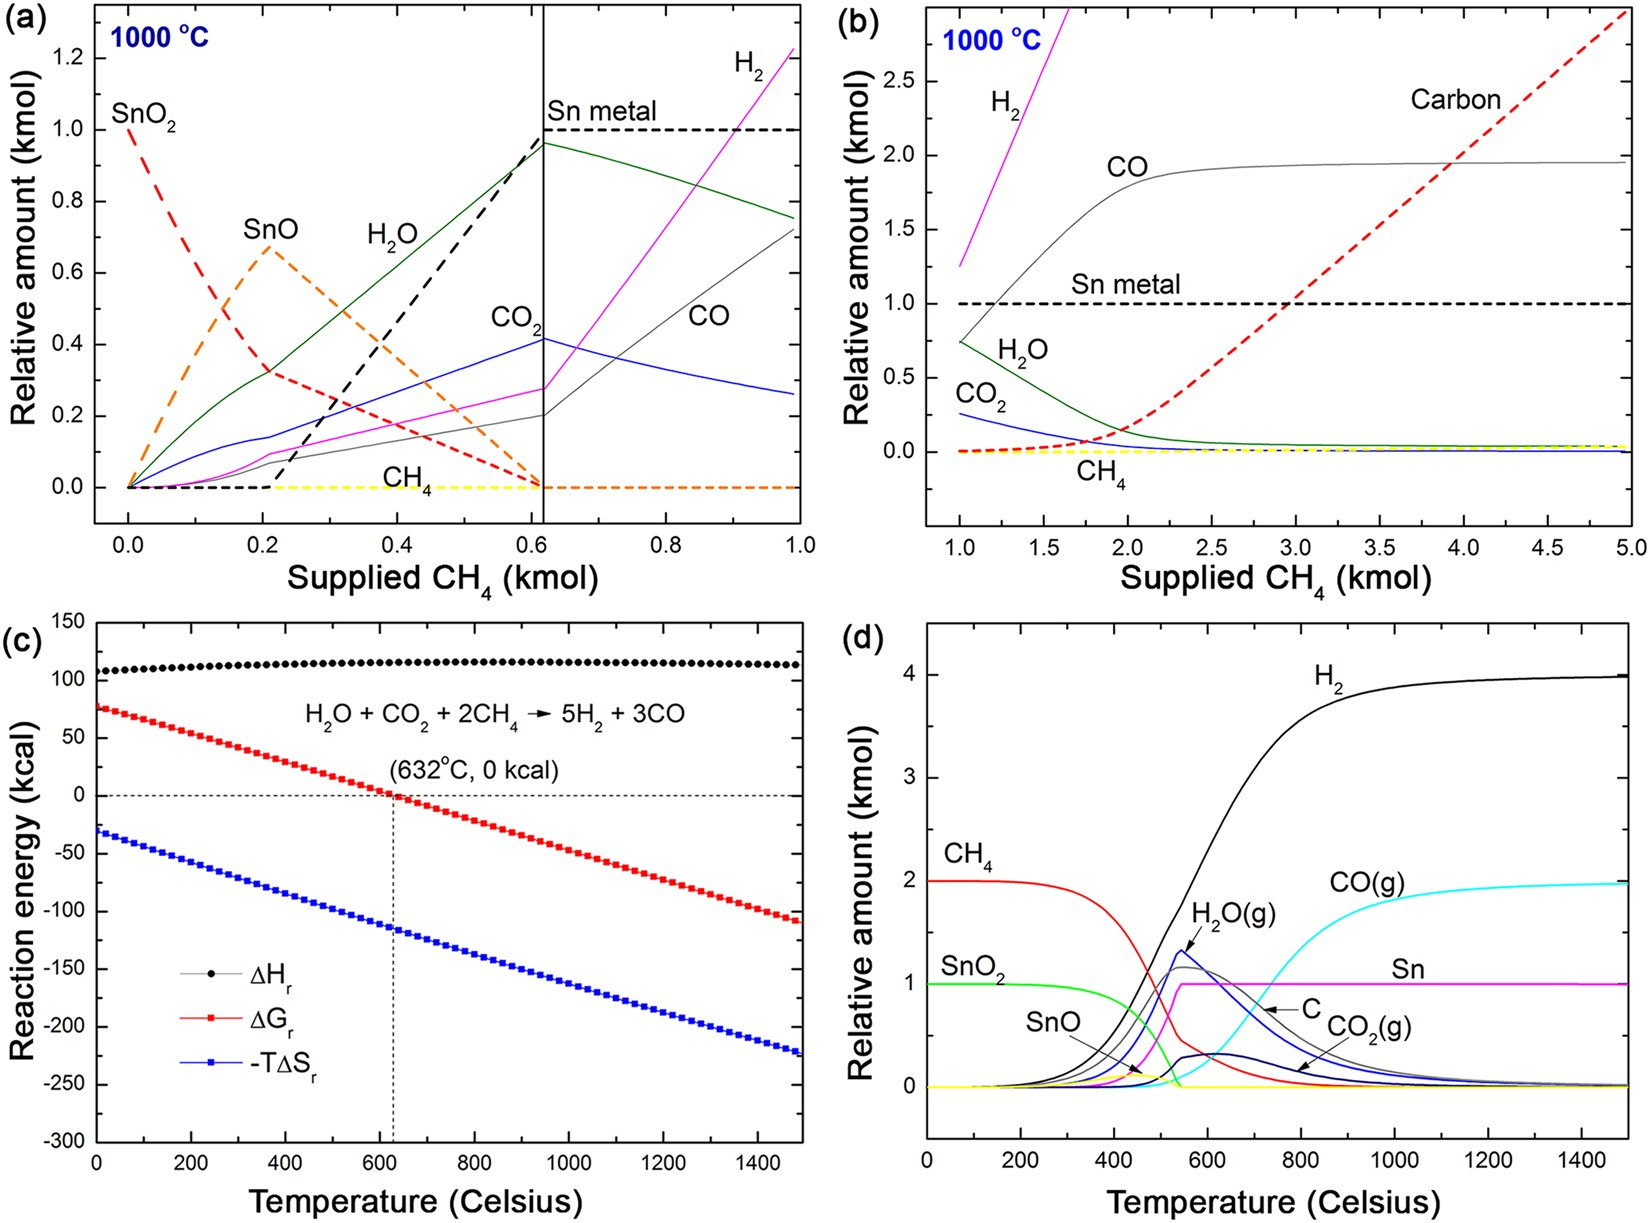 Design Of Reduction Process Sno 2 By Ch 4 For Efficient Sn Ricerche Correlate A Metal Detector Circuit Schematic Recovery Scientific Reports